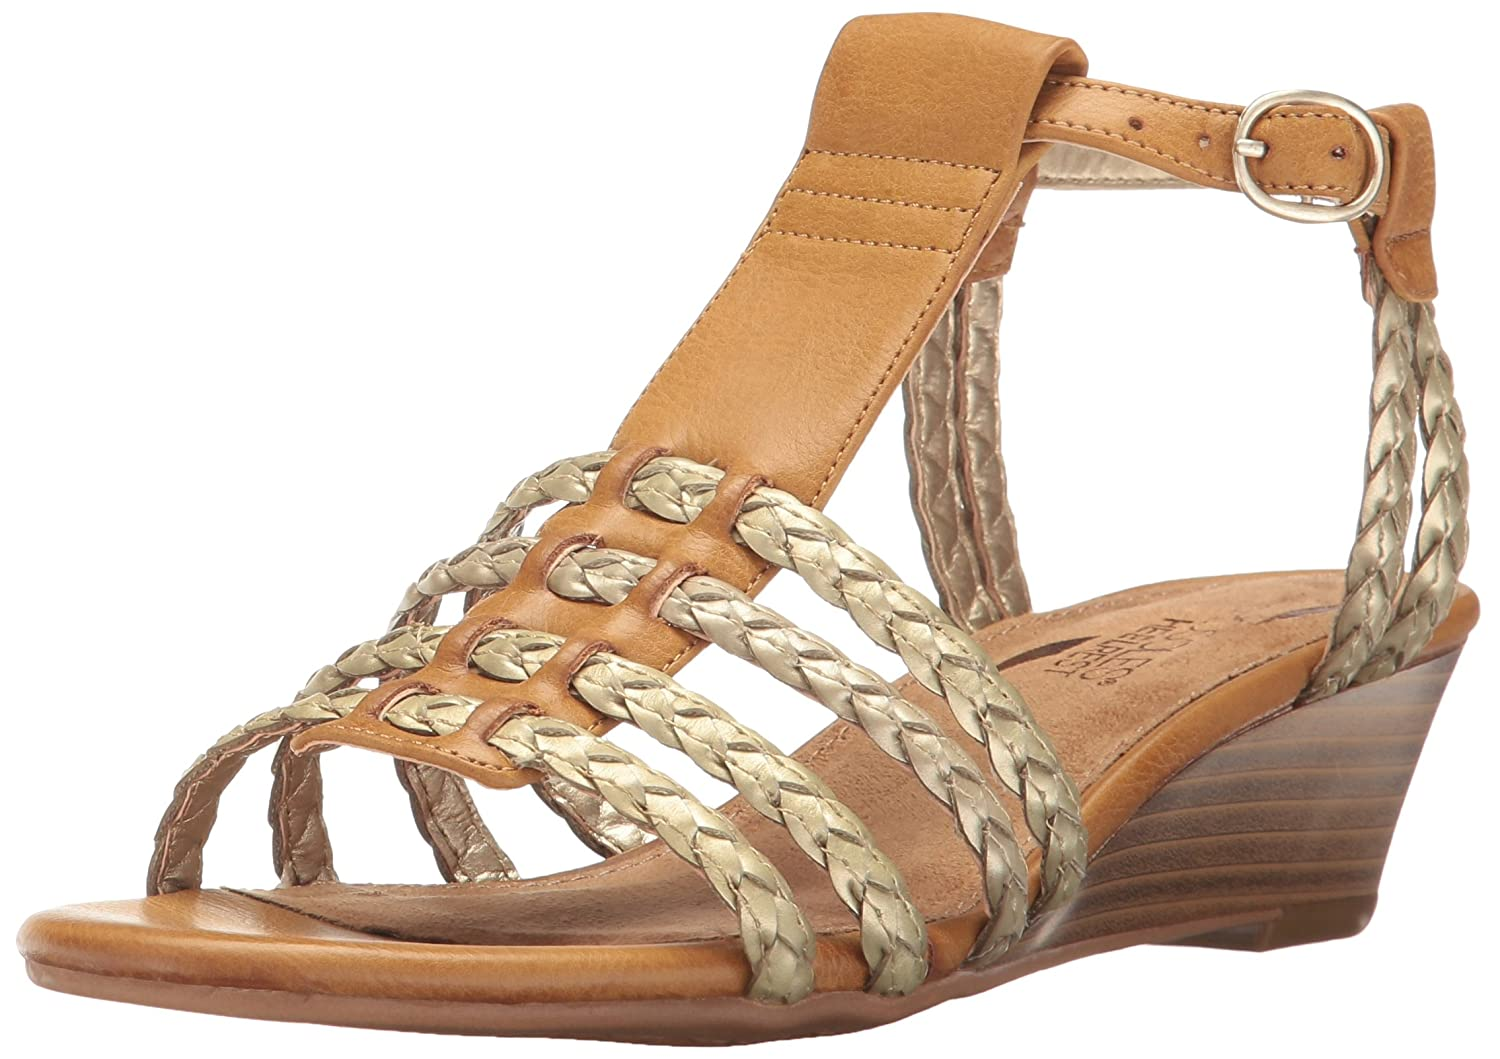 Aerosoles Women's Bittersweet Wedge Sandal B01MXMFNN0 5.5 B(M) US|Dark Tan Combo